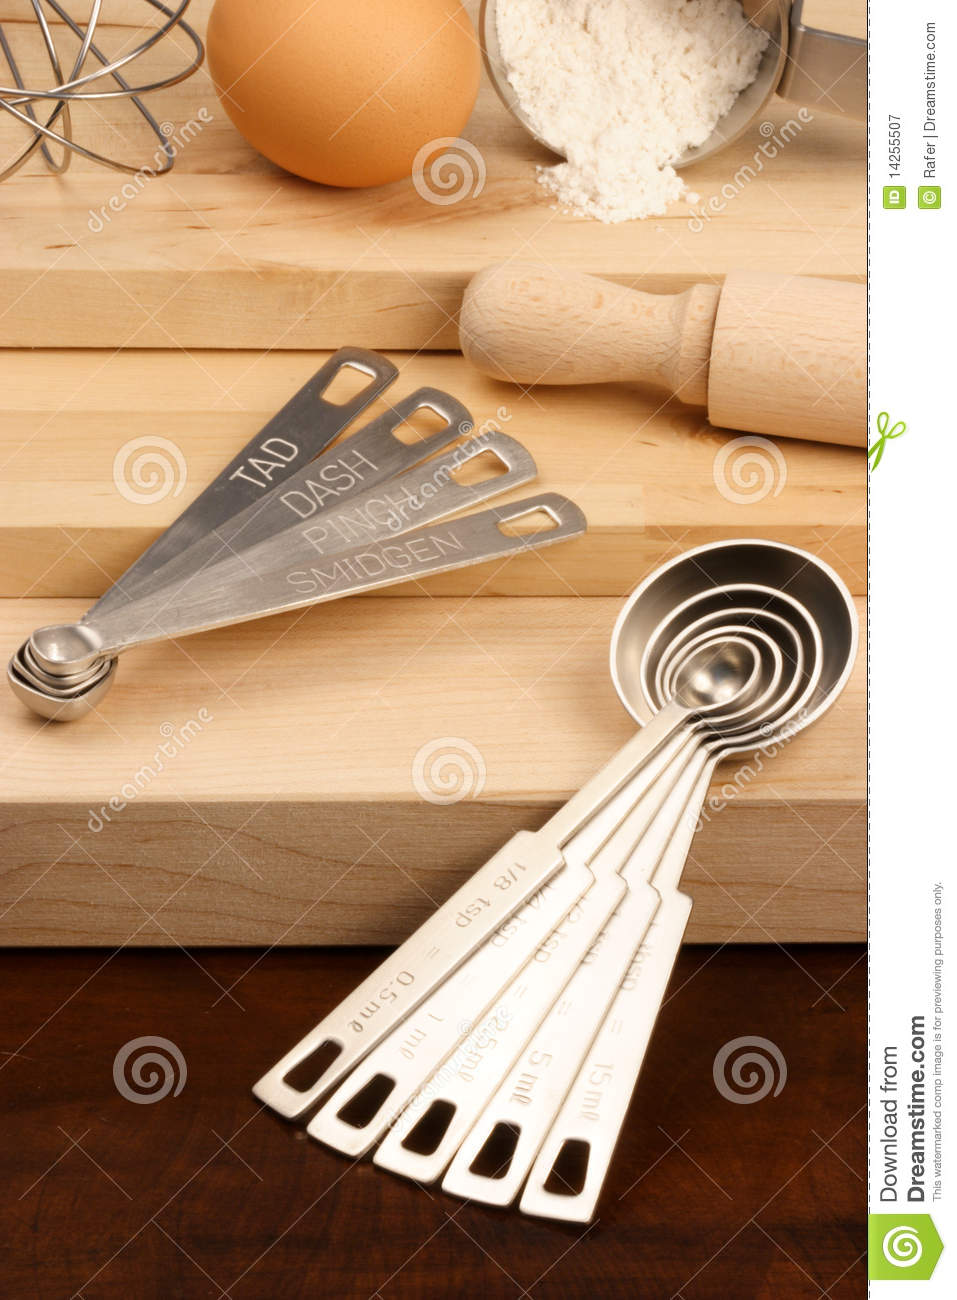 Kitchen Utensils Over Wood Royalty Free Stock Photography